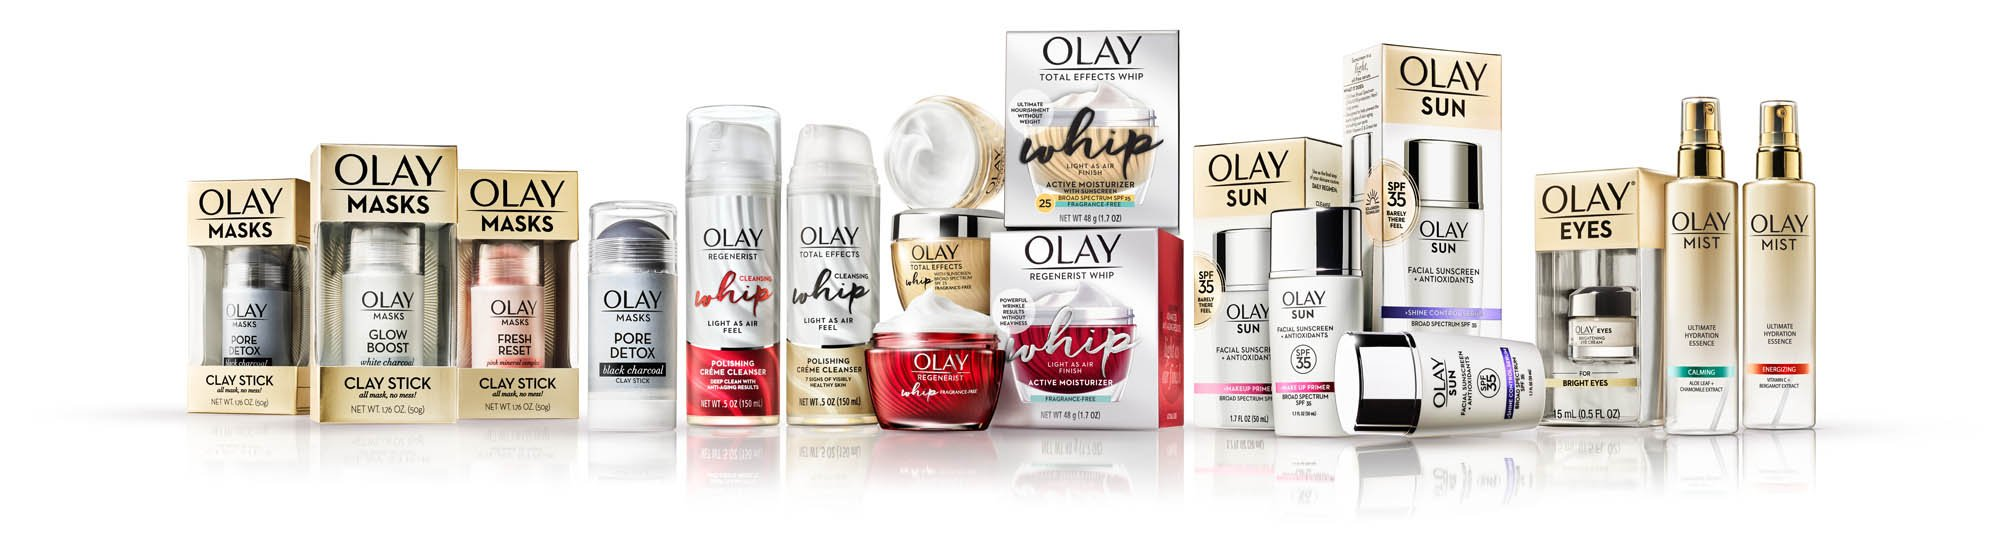 Olay product family - high end photography